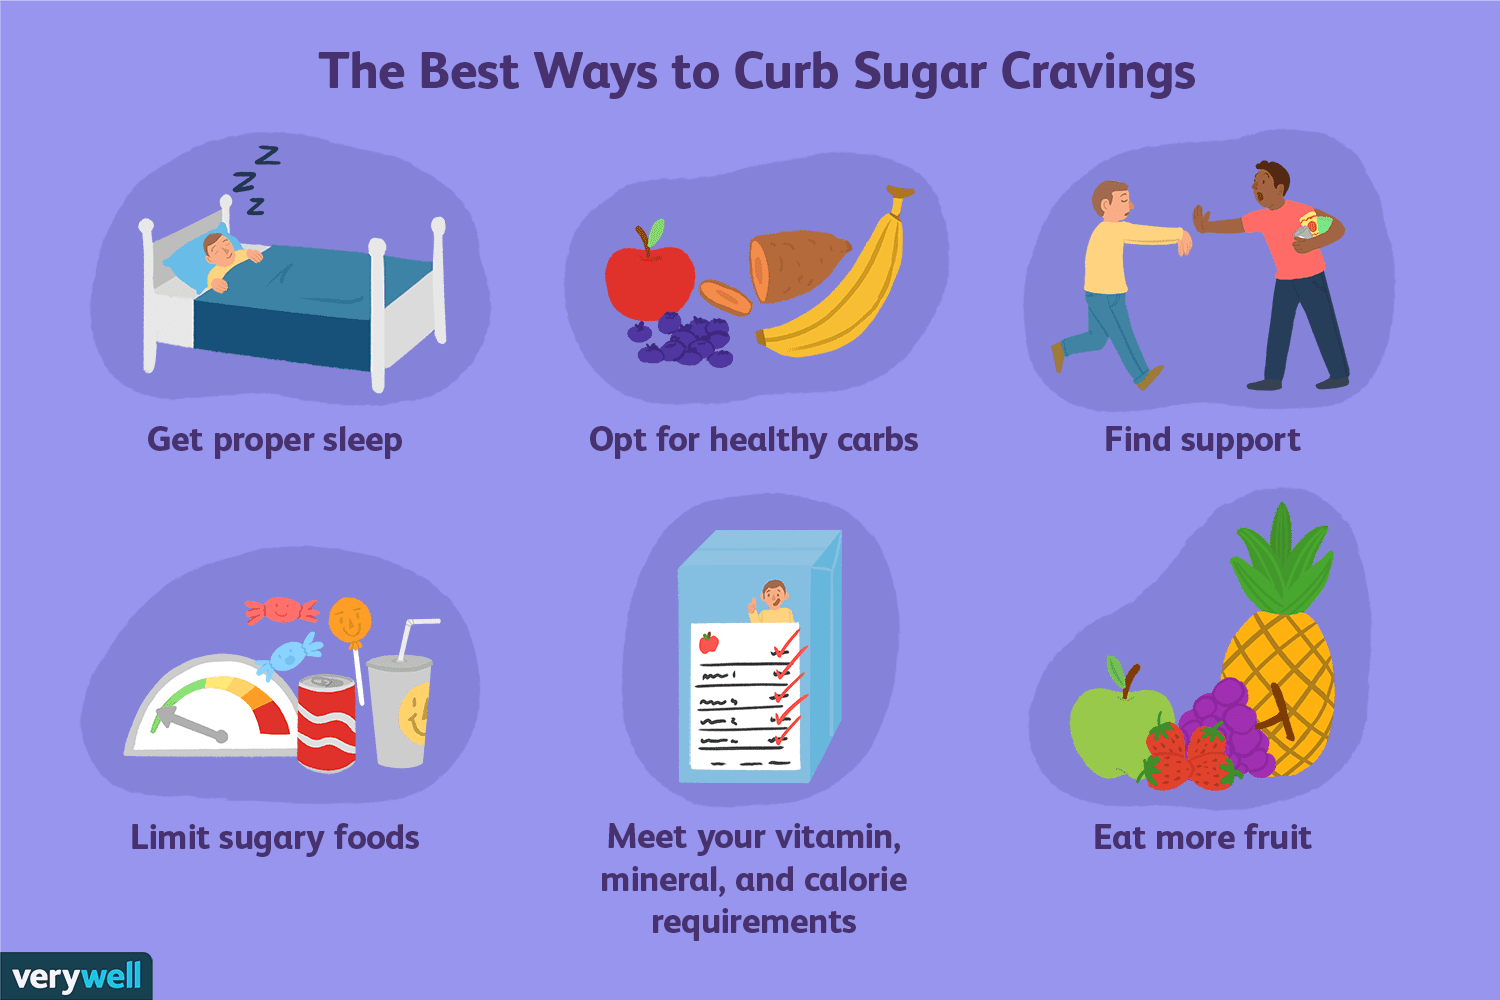 How To Help Curb Sugar Cravings